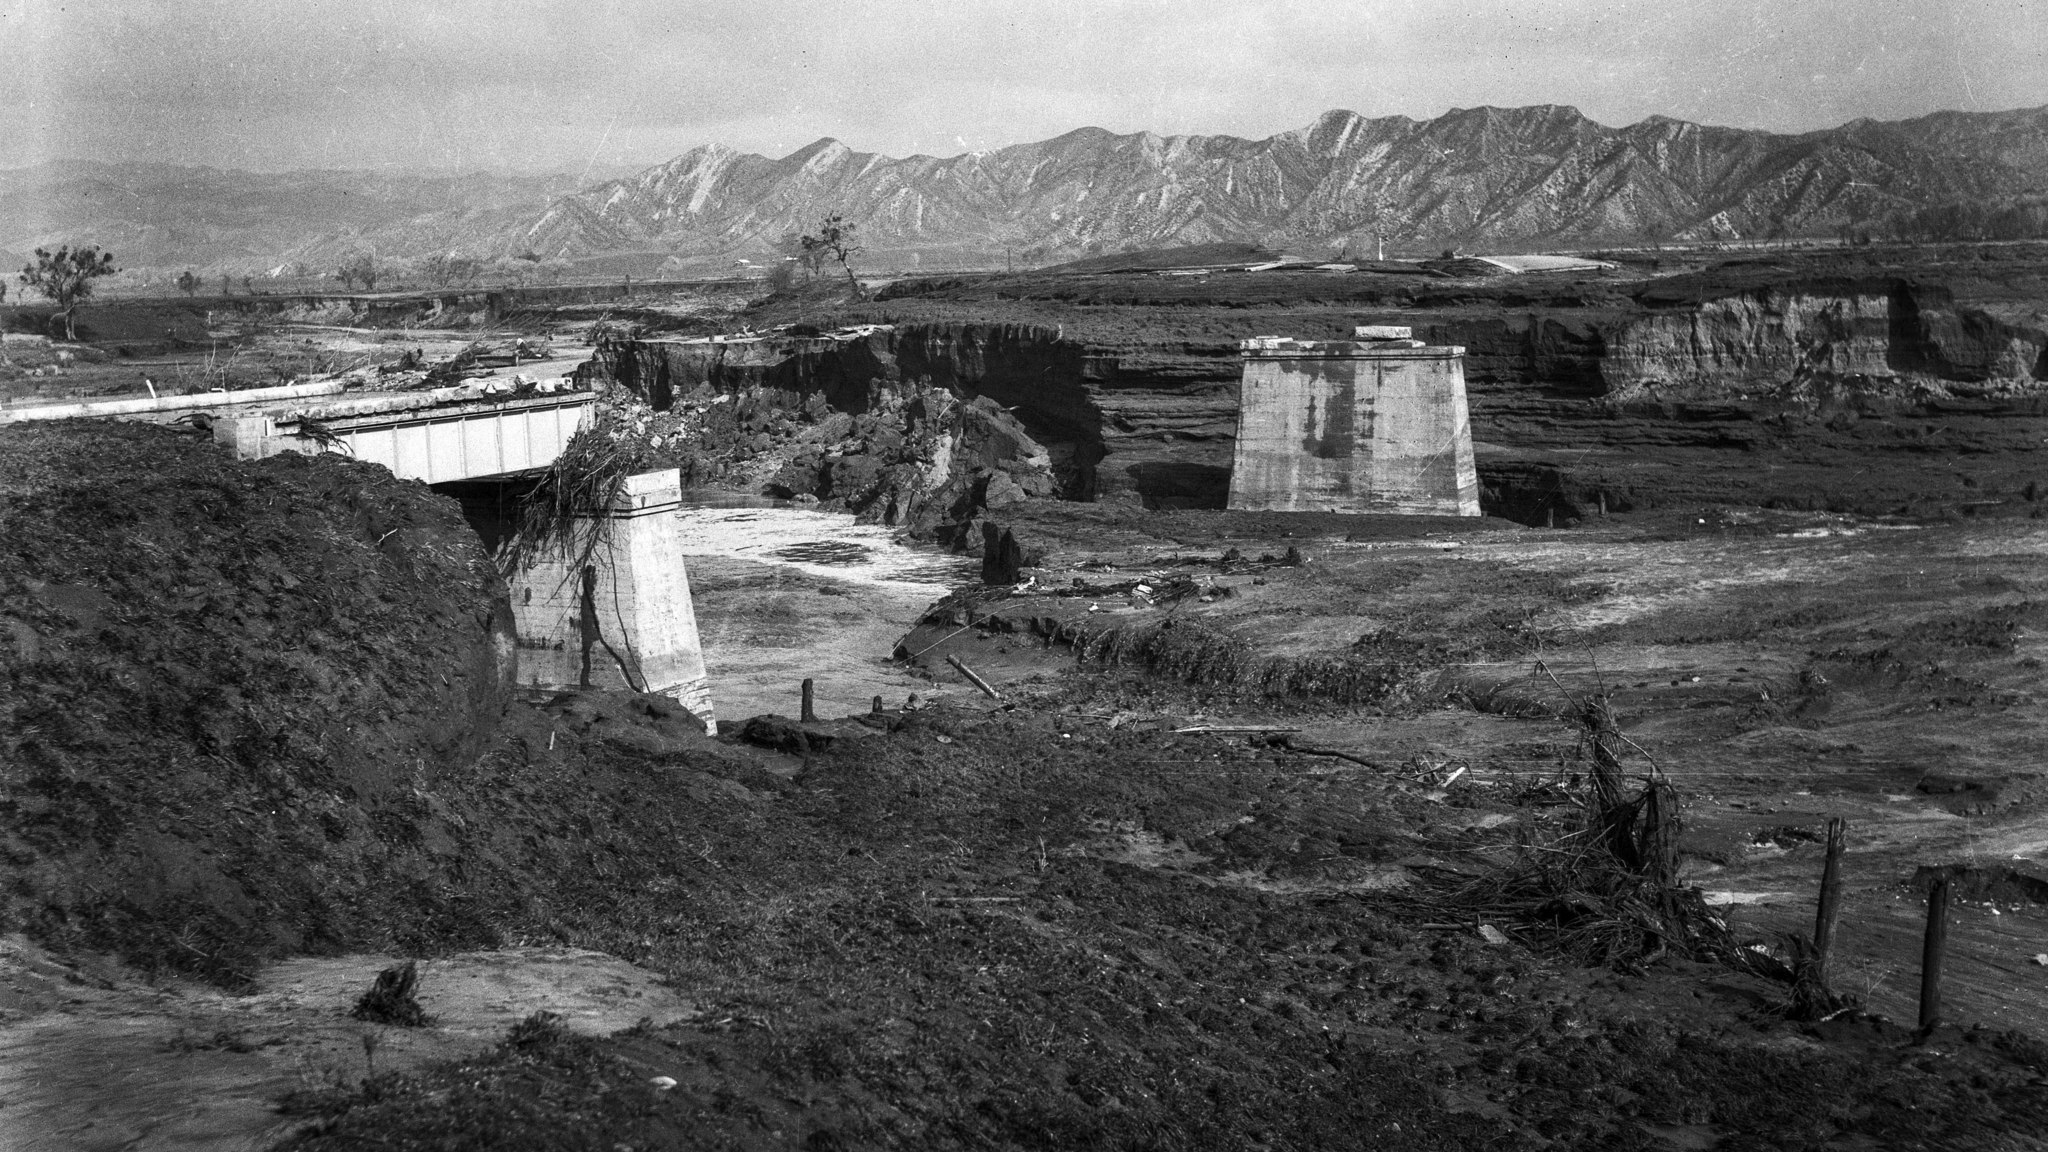 March. 13, 1928: View of Main Highway Bridge one and onee-half miles from Castaic. Only the supports